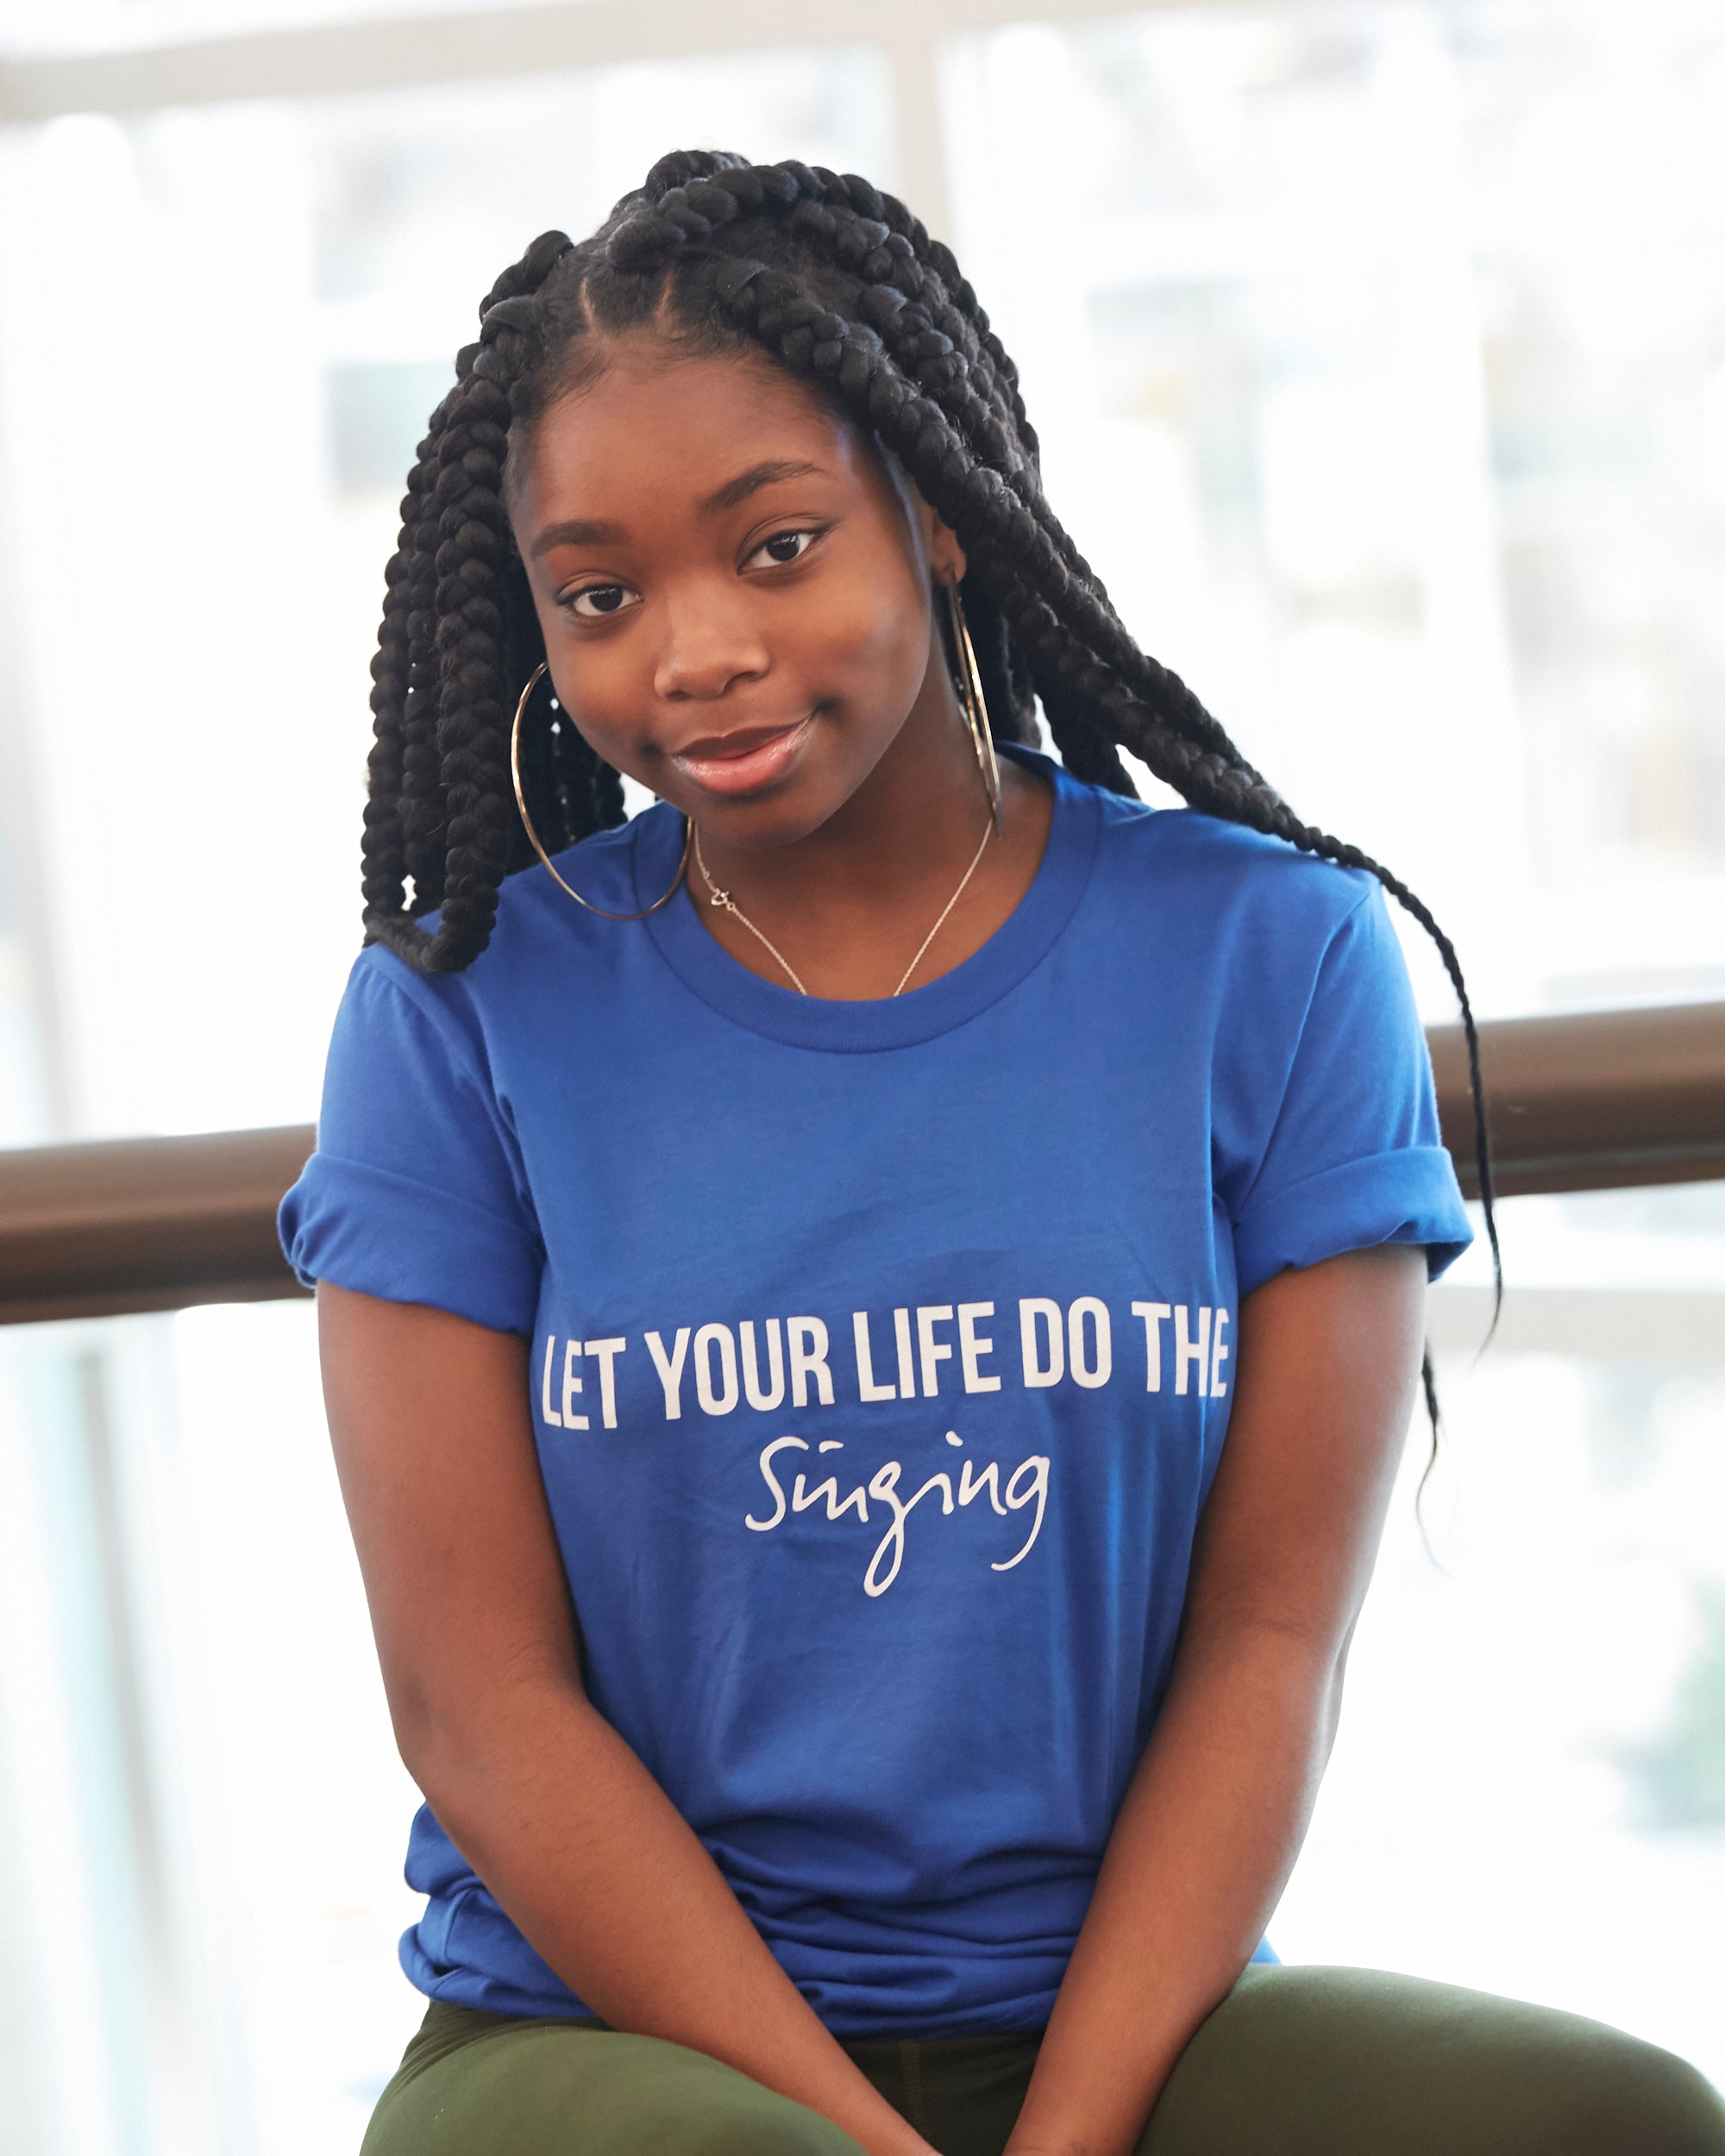 Let Your Life Do The Singing (Royal Blue & White)